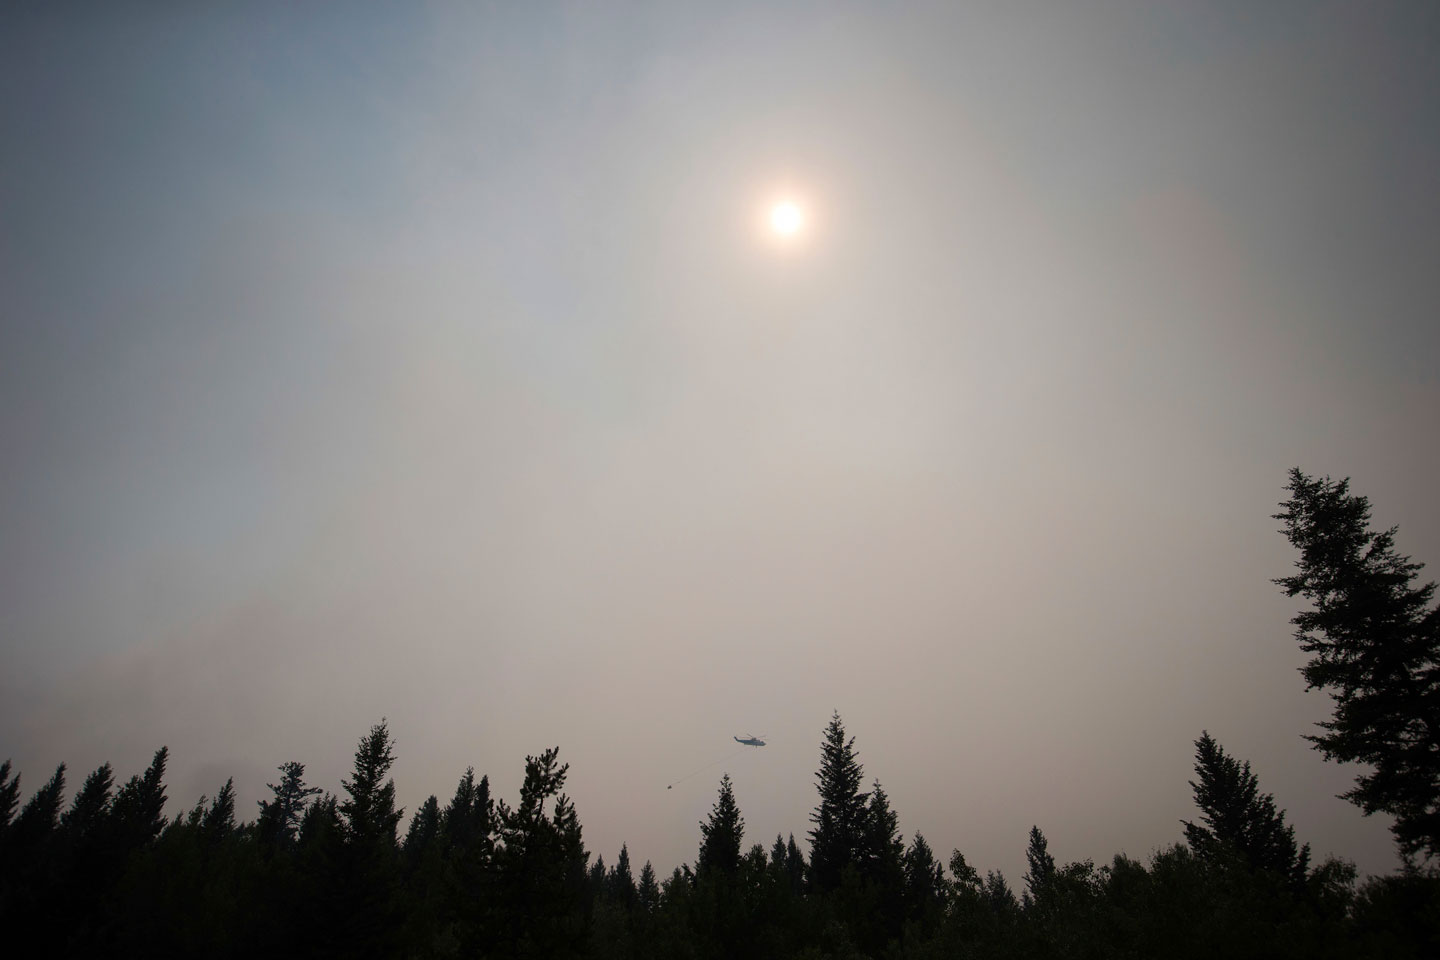 Smoke obscures the sun as a helicopter carrying a bucket battles the Gustafsen wildfire near 100 Mile House, B.C., on Saturday July 8, 2017. More than 180 fires were burning, many considered out of control, as the B.C. government declared a provincewide state of emergency to co-ordinate the crisis response. Officials said buildings have been destroyed, but they did not release numbers. The BC Wildfire Service says over 173 fires were reported on Friday alone as lightning storms rolled over several parts of B.C. (Darryl Dyck/The Canadian Press via AP)